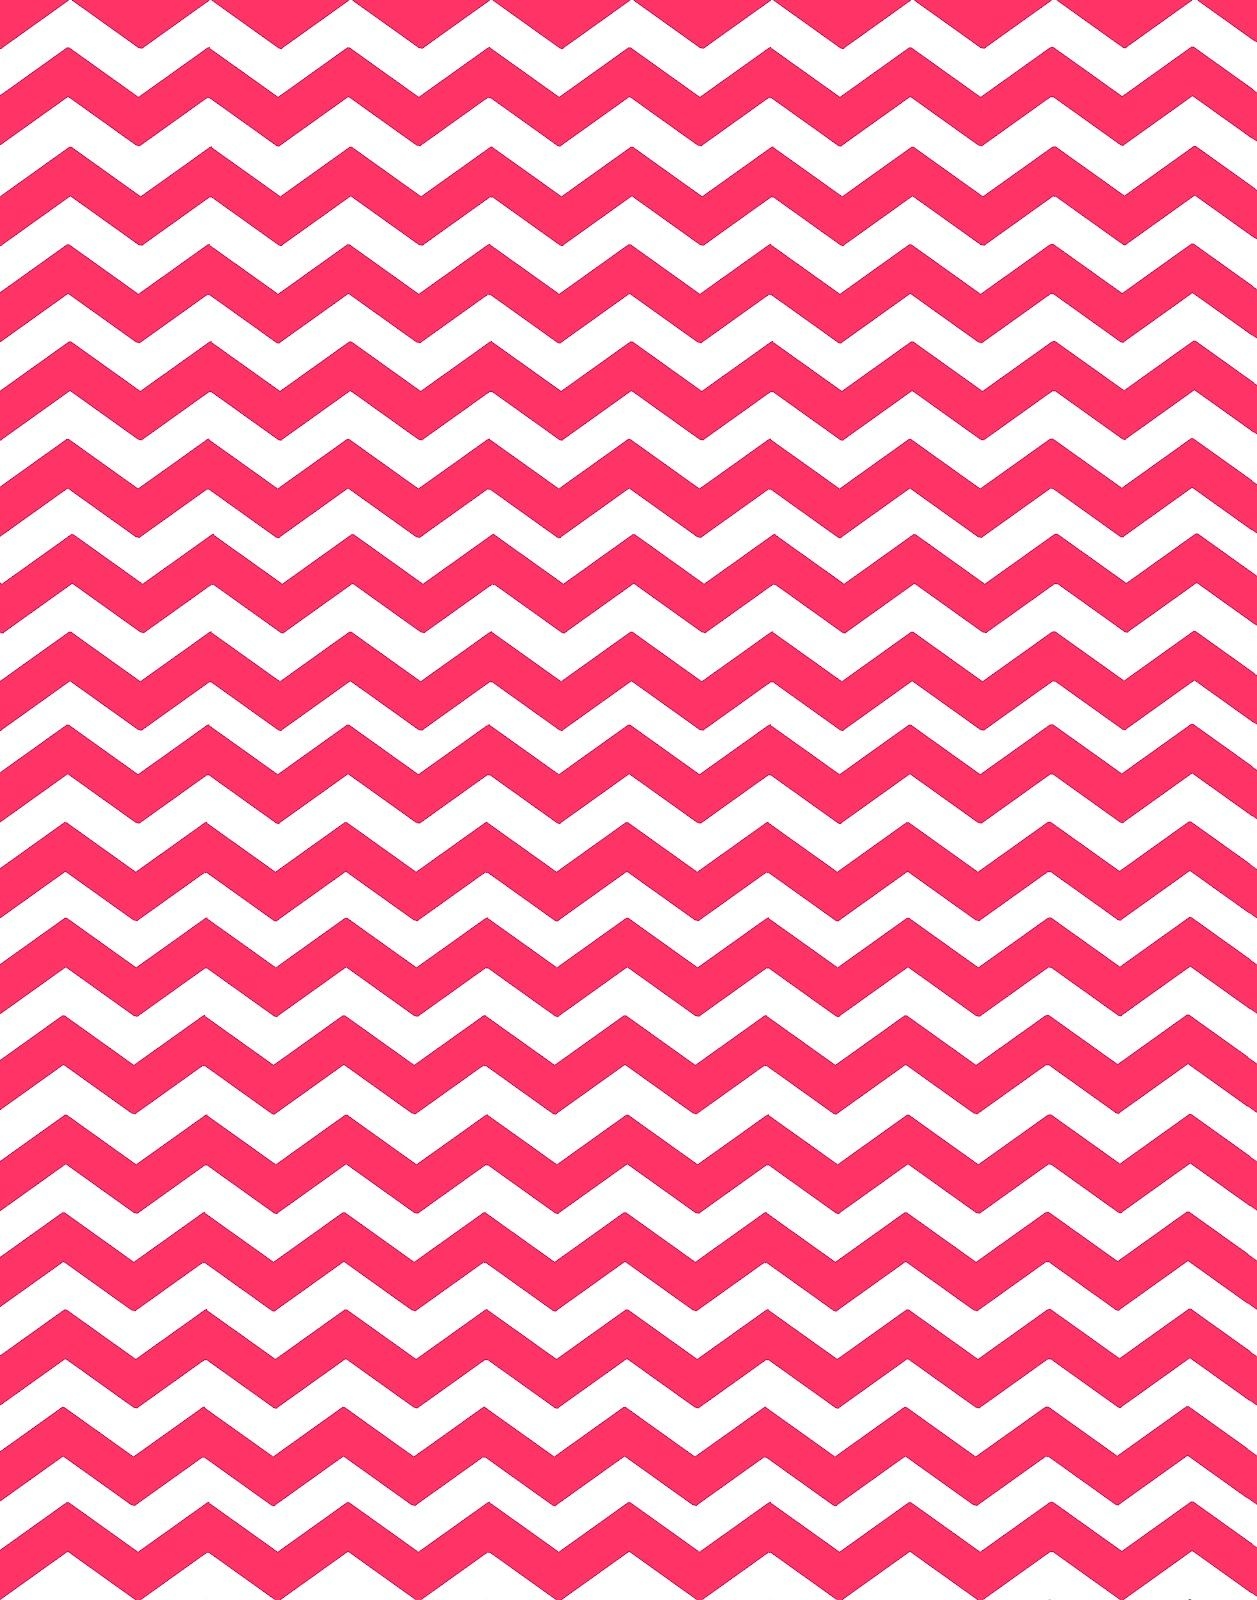 Doodle Craft 16 New Colors Chevron background patterns